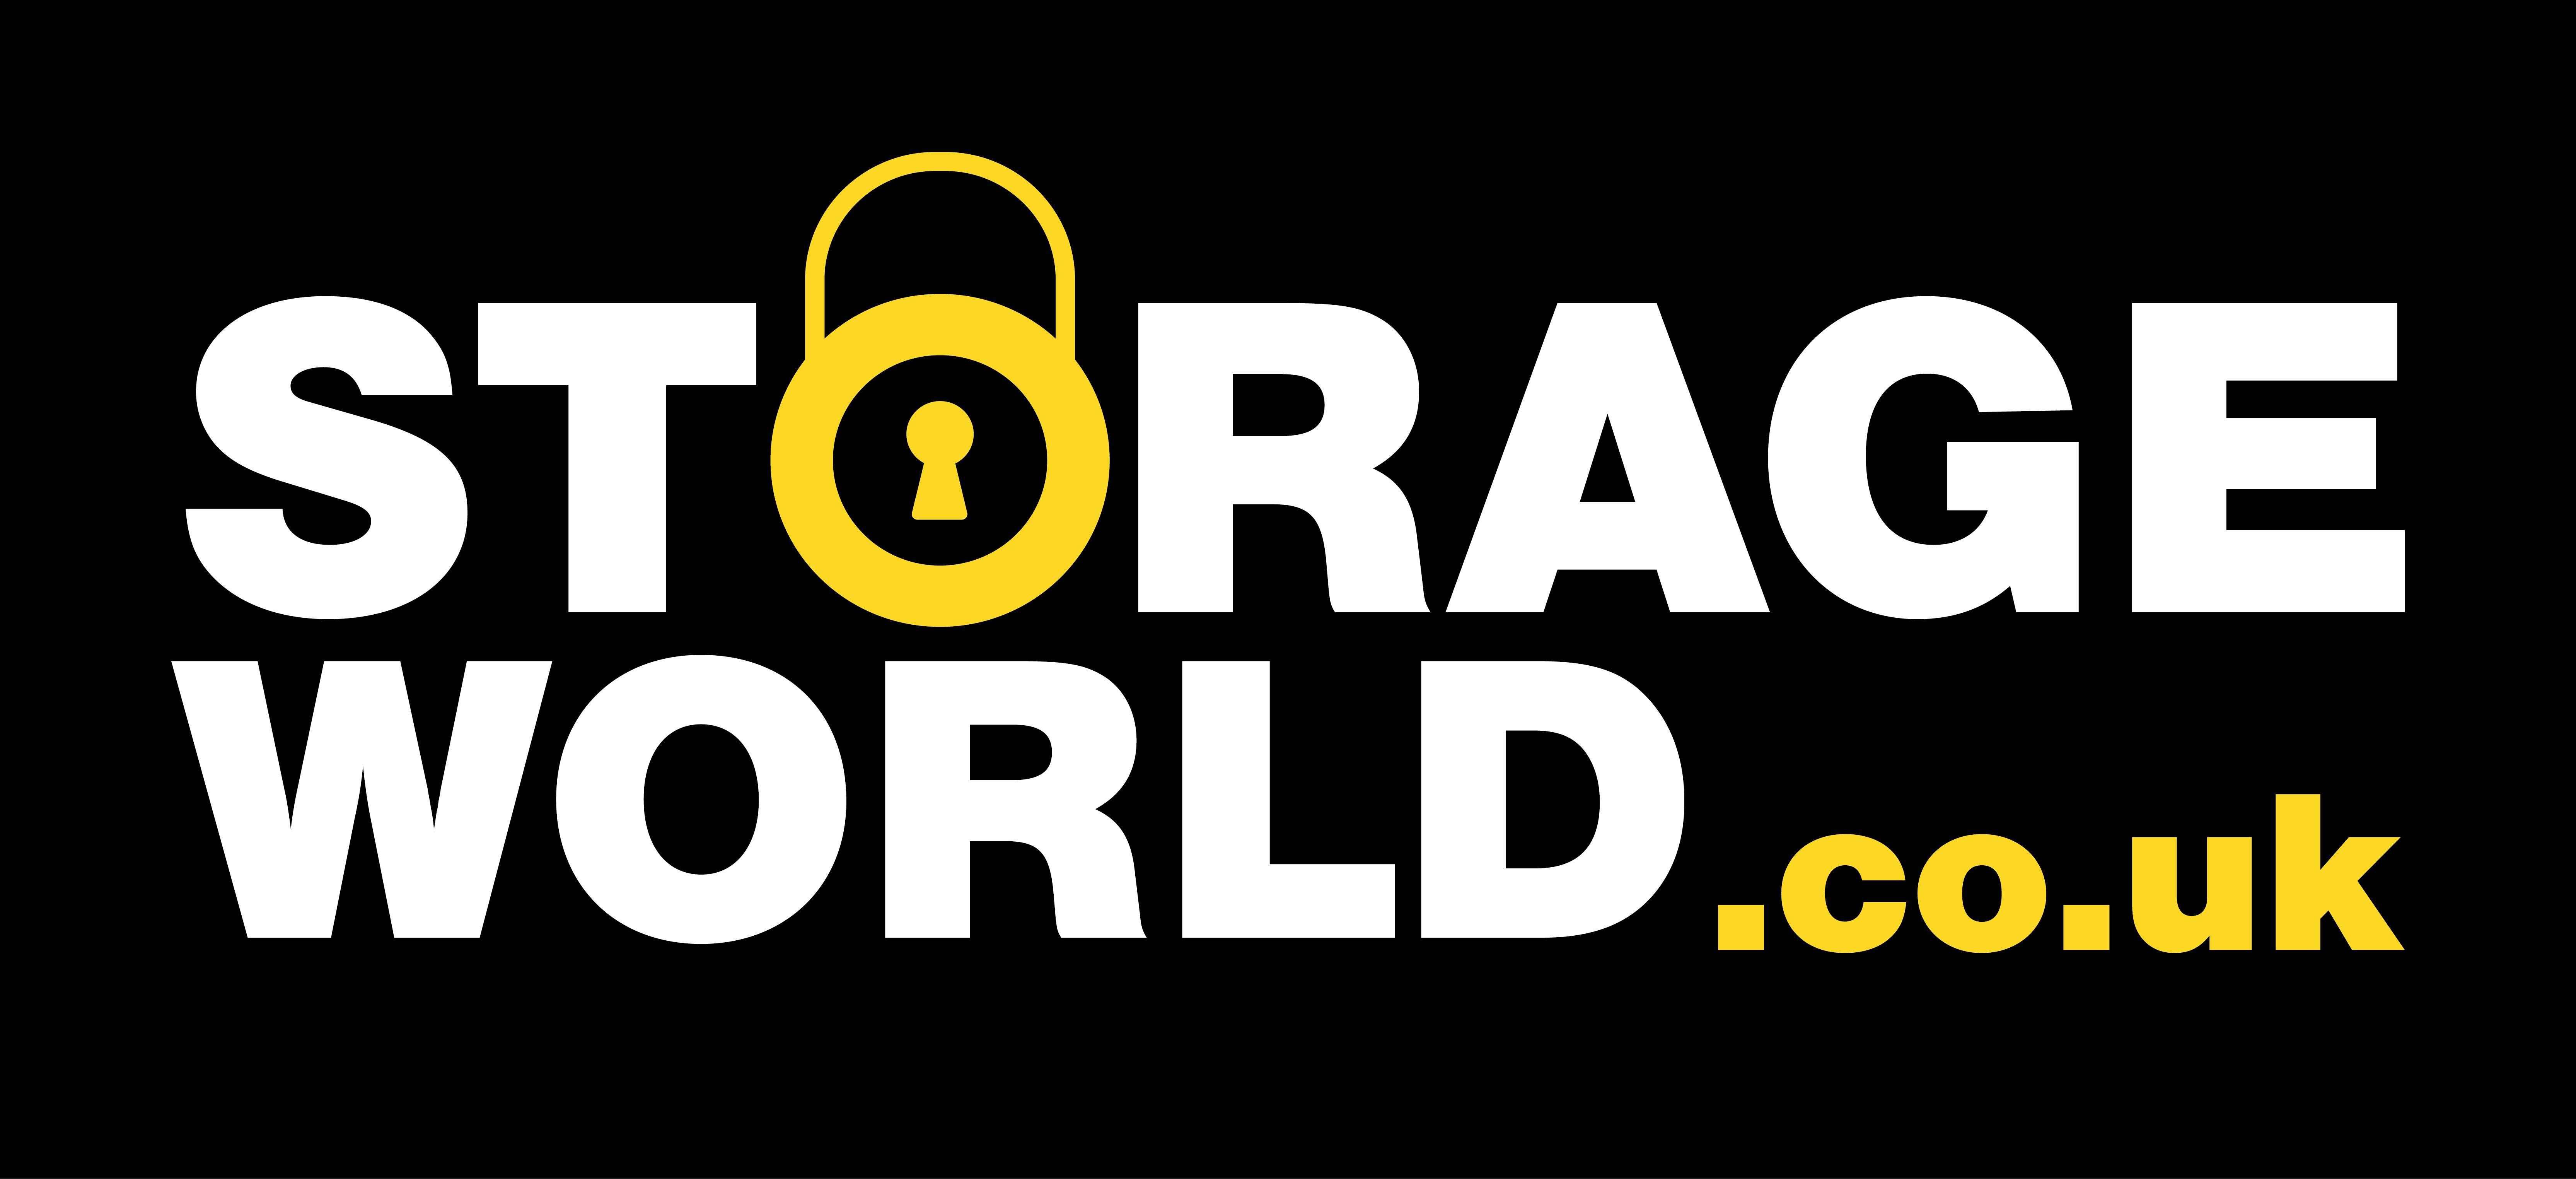 storage world self storage logo